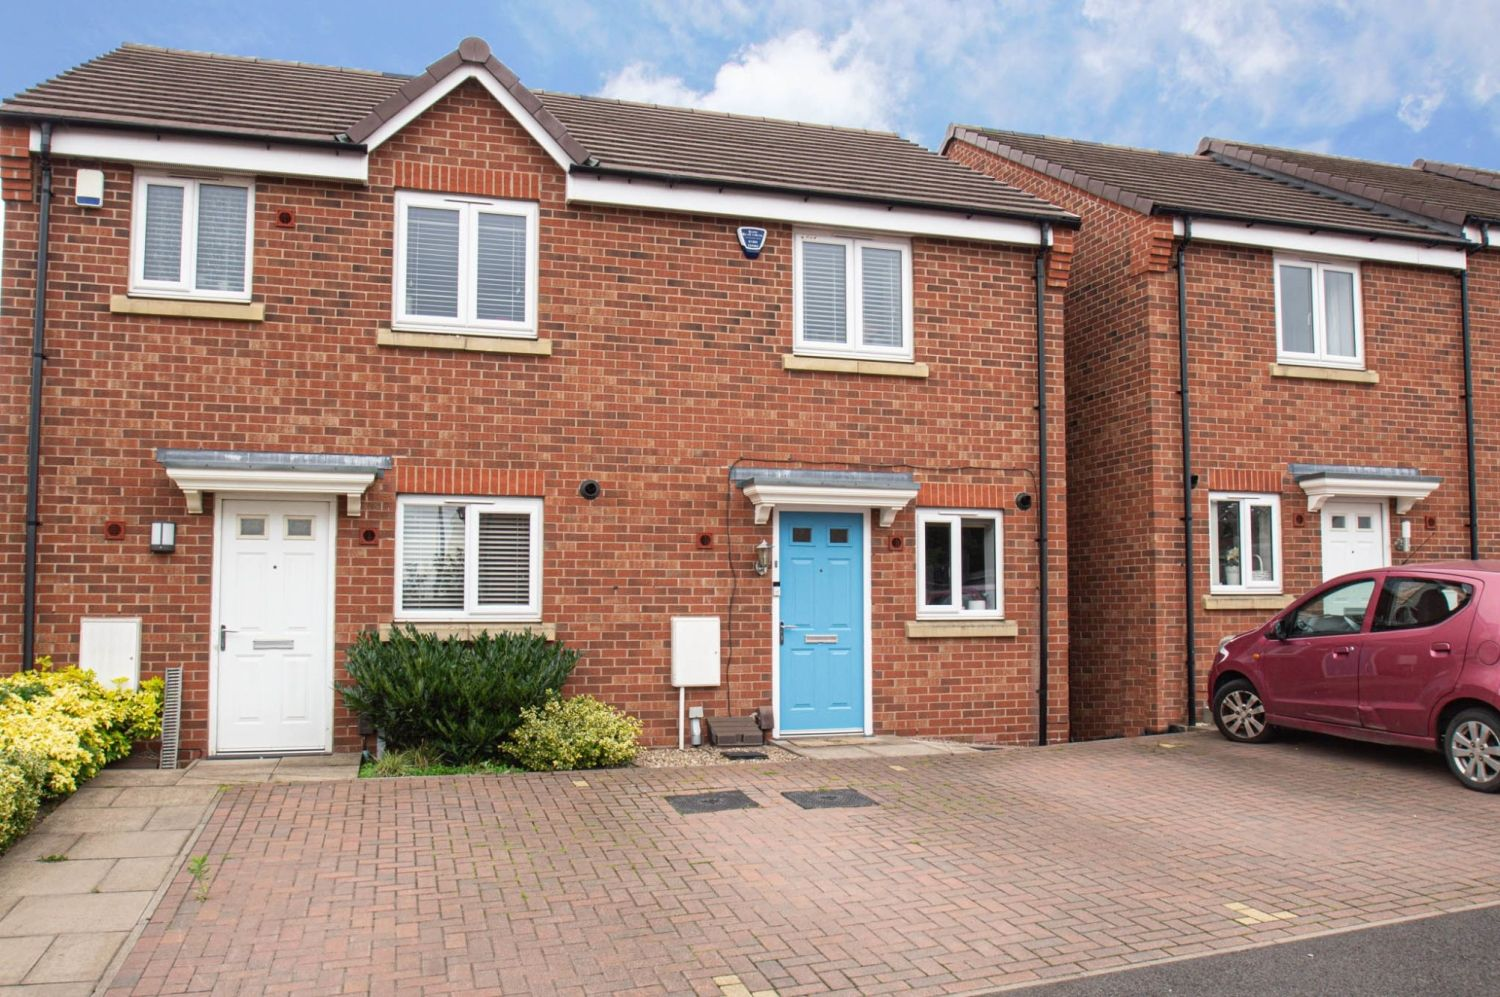 2 bed semi-detached for sale in Bobeche Place, Kingswinford 1